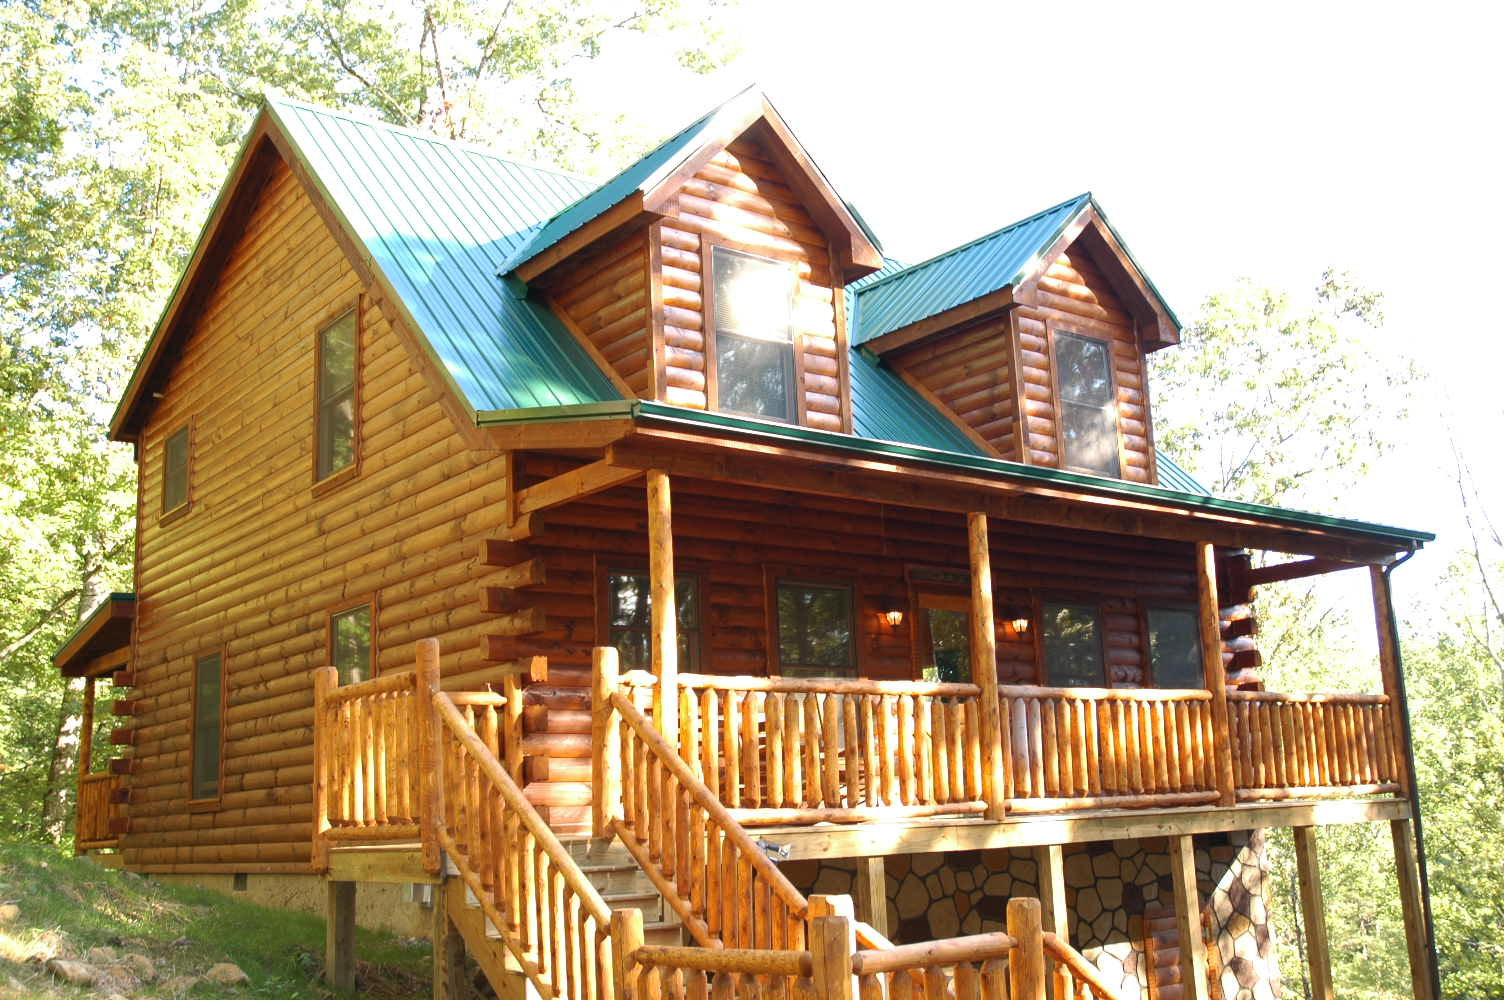 forge media country of cabin a rentals tn rental gatlinburg shared blessings home id link pigeon cabins